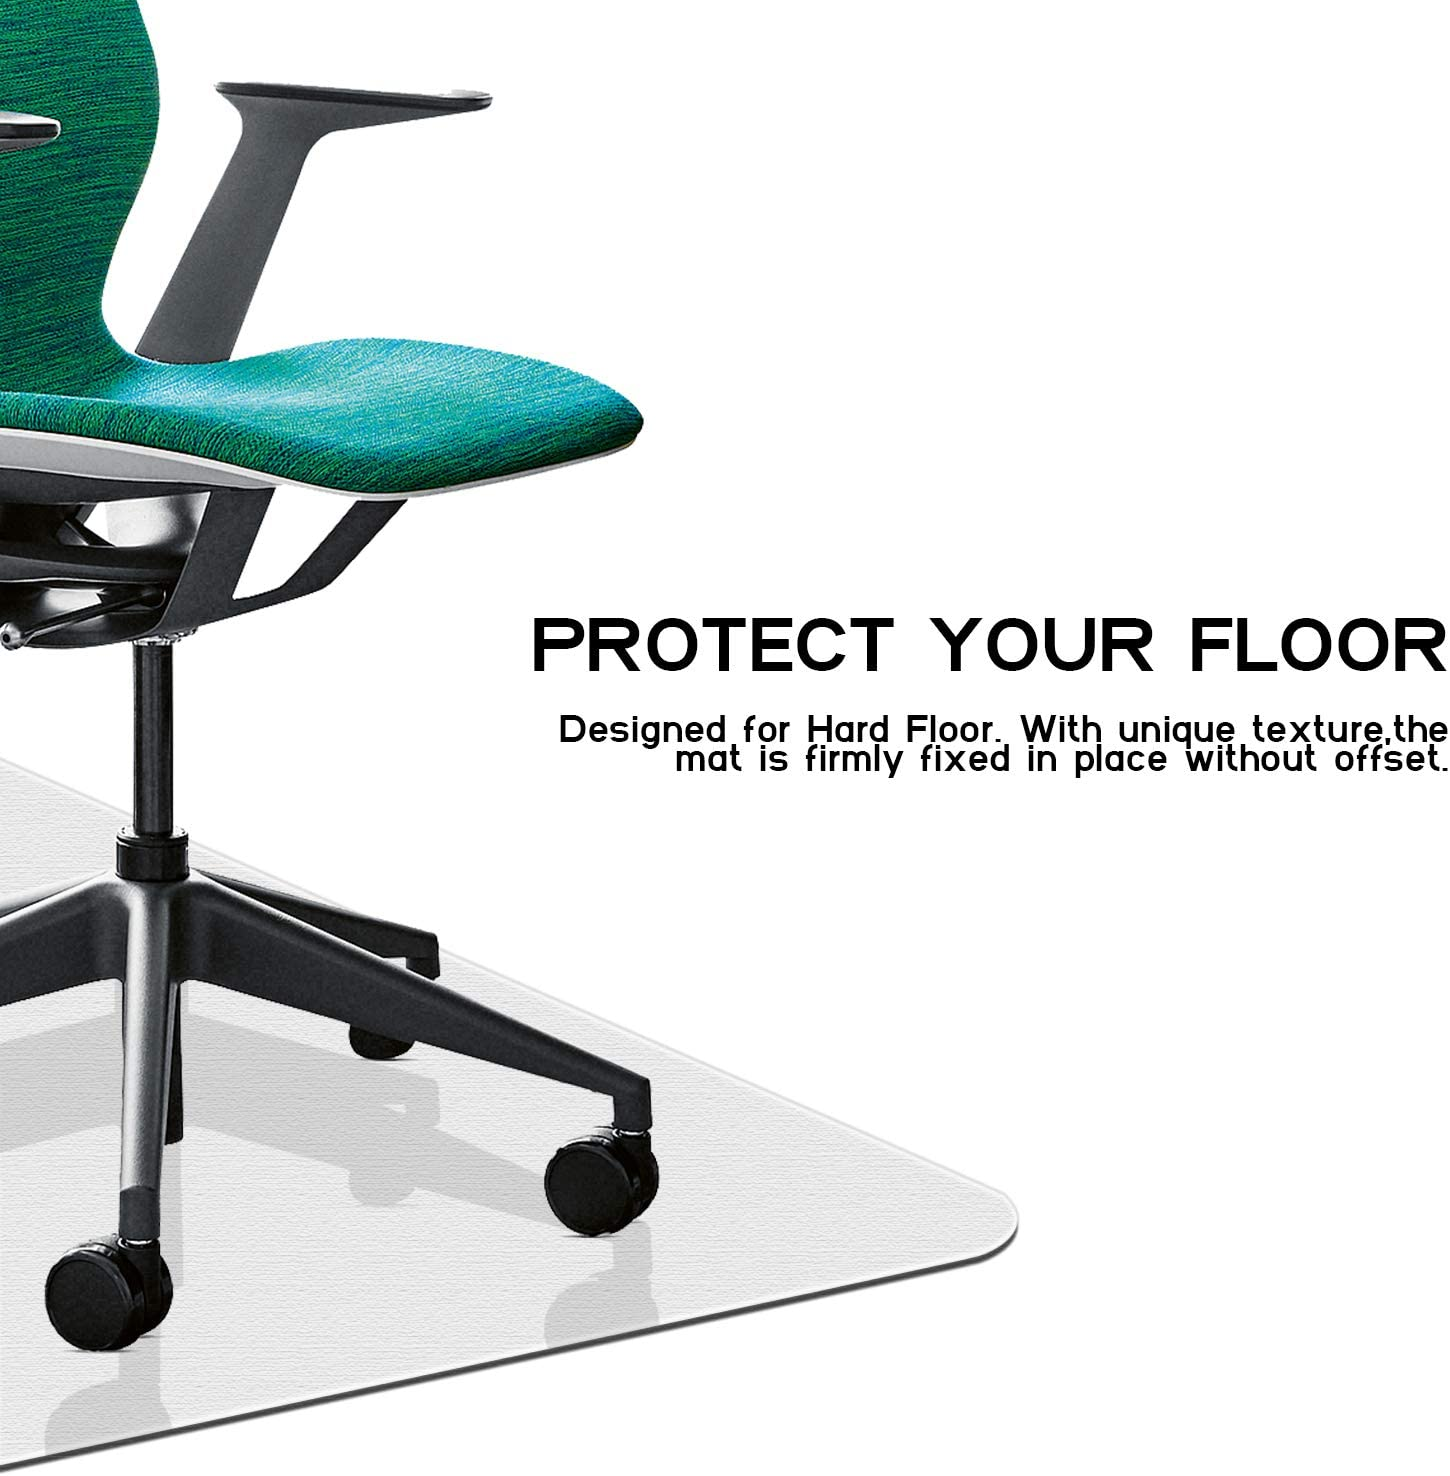 """HOKEKI Office Chair Mat for Hardwood Floor, 36"""" x 48'' with Lip Transparent Floor Mats for Rolling Chairs, Wood/Tile Protection Mat for Office & Home (36"""" x 48'') : Office Products"""